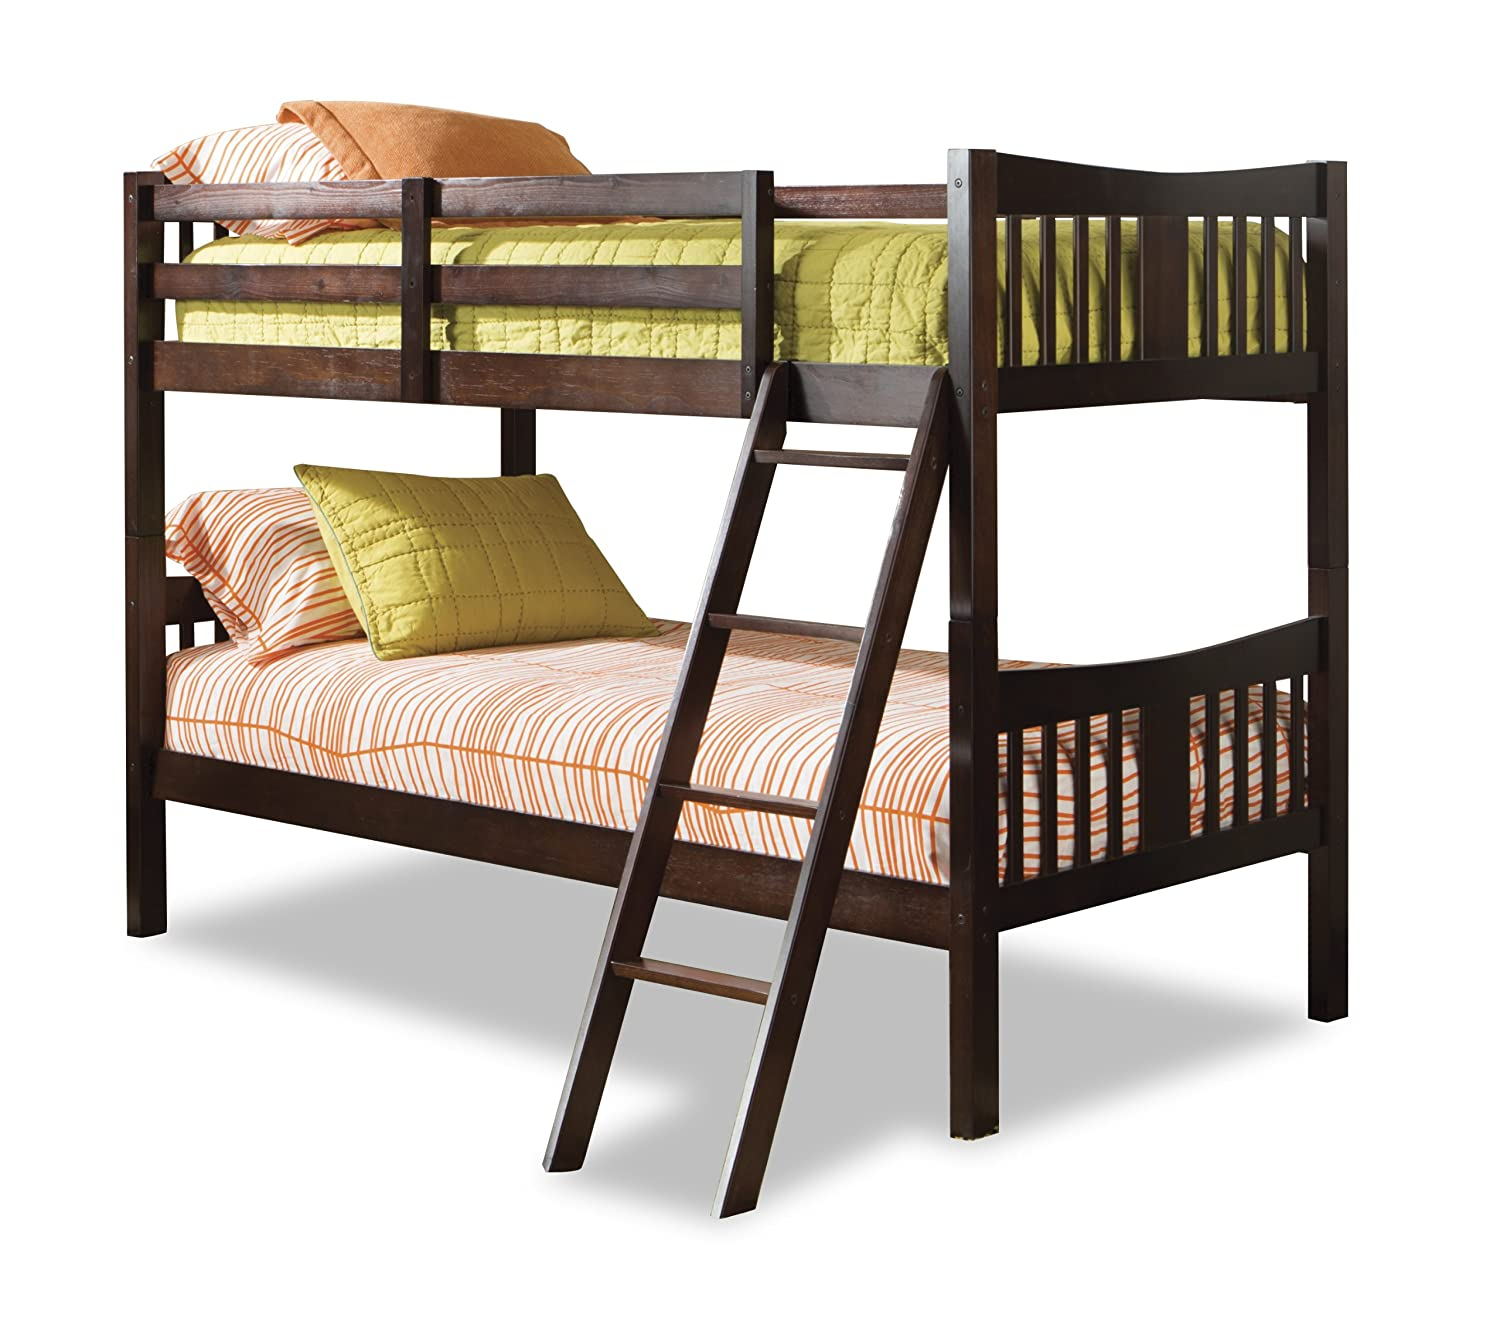 5 Best Kids Bunk Beds under $200 Reviews of 2021 9